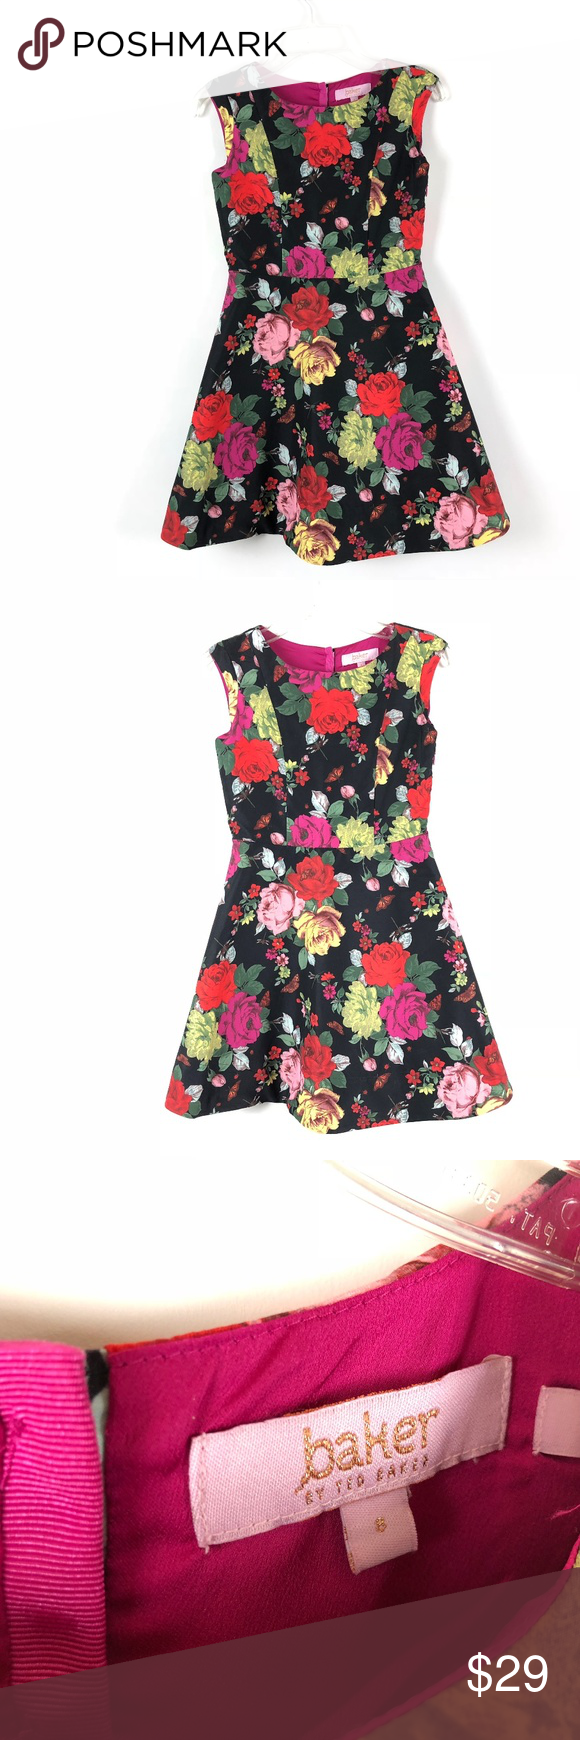 539210ef3ff83 Baker by Ted Baker Girls dress floral roses 8 kids Baker by Ted Baker Girls  dress